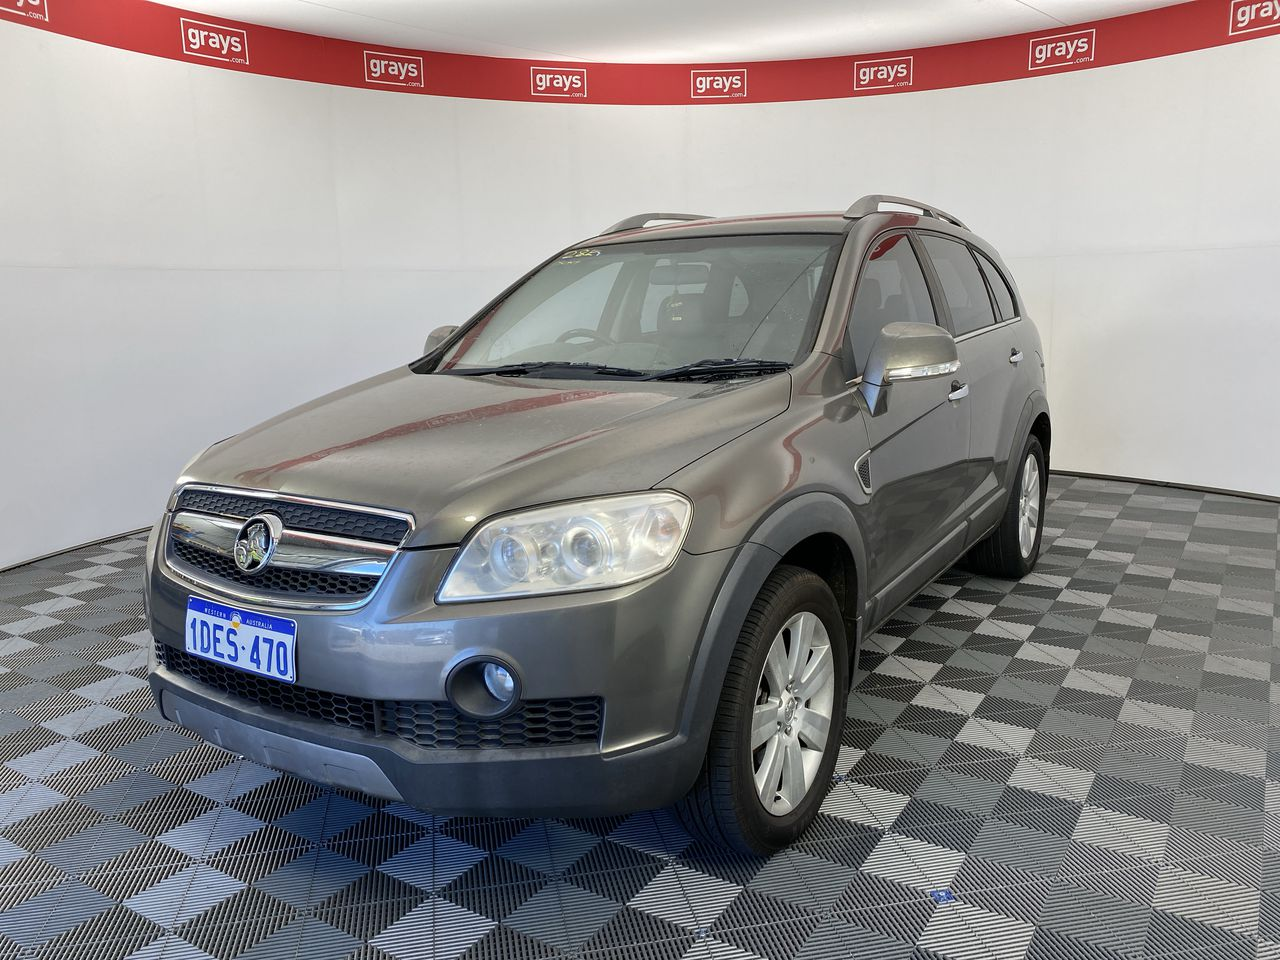 2009 Holden Captiva LX (AWD) CG Turbo Diesel Automatic 7 Seats Wagon